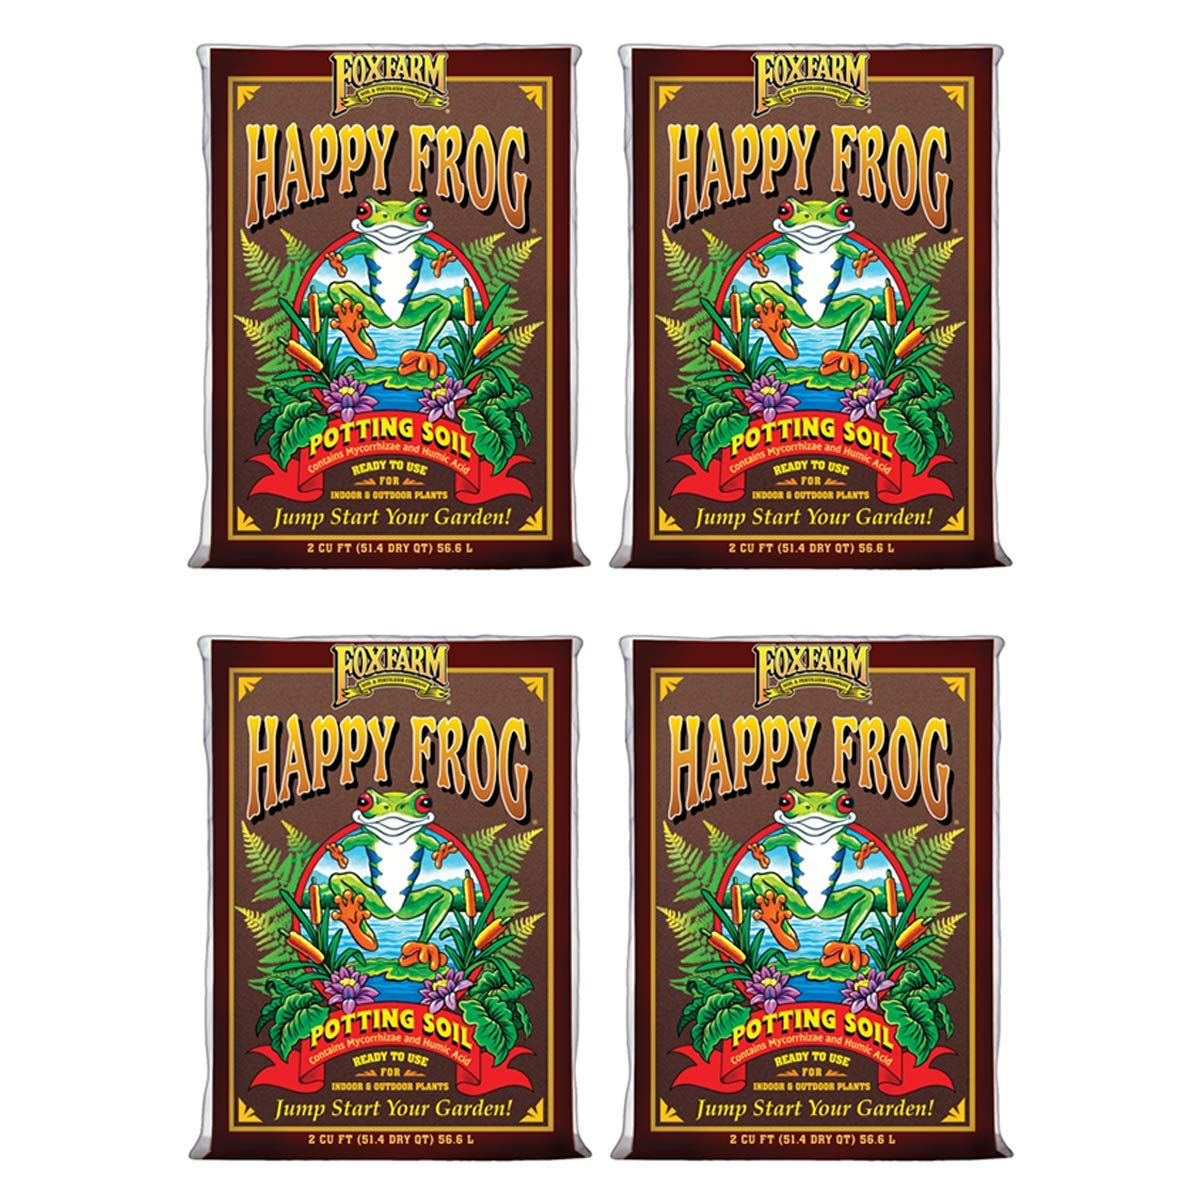 (4) FOXFARM FX14047 pH Adjusted Happy Frog Organic Potting Soil Bags | 8 Cu Ft by Fox Farm